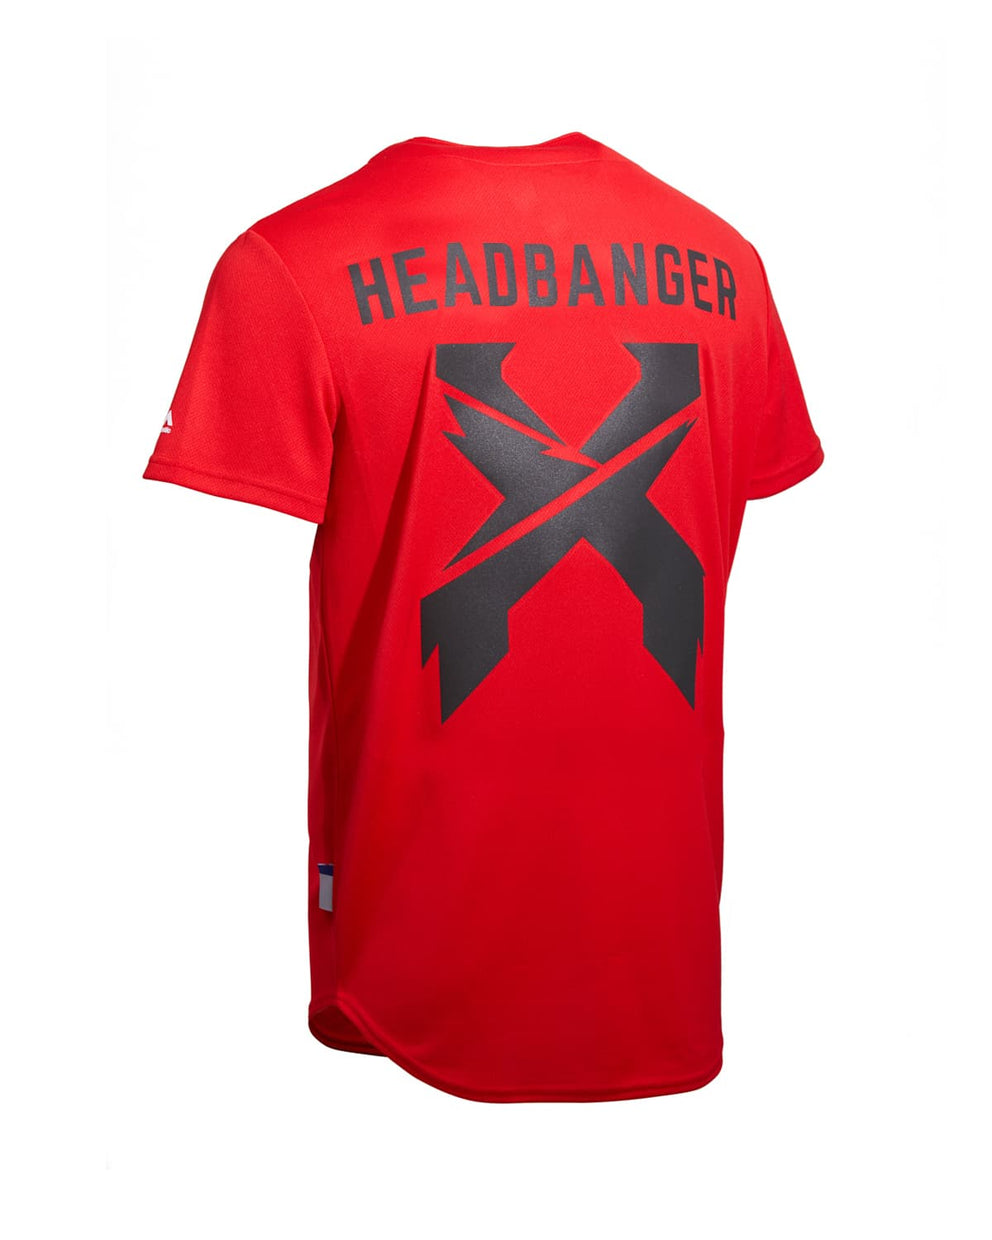 Excision 'Headbanger' Reflective Baseball Jersey - Scarlet/Black